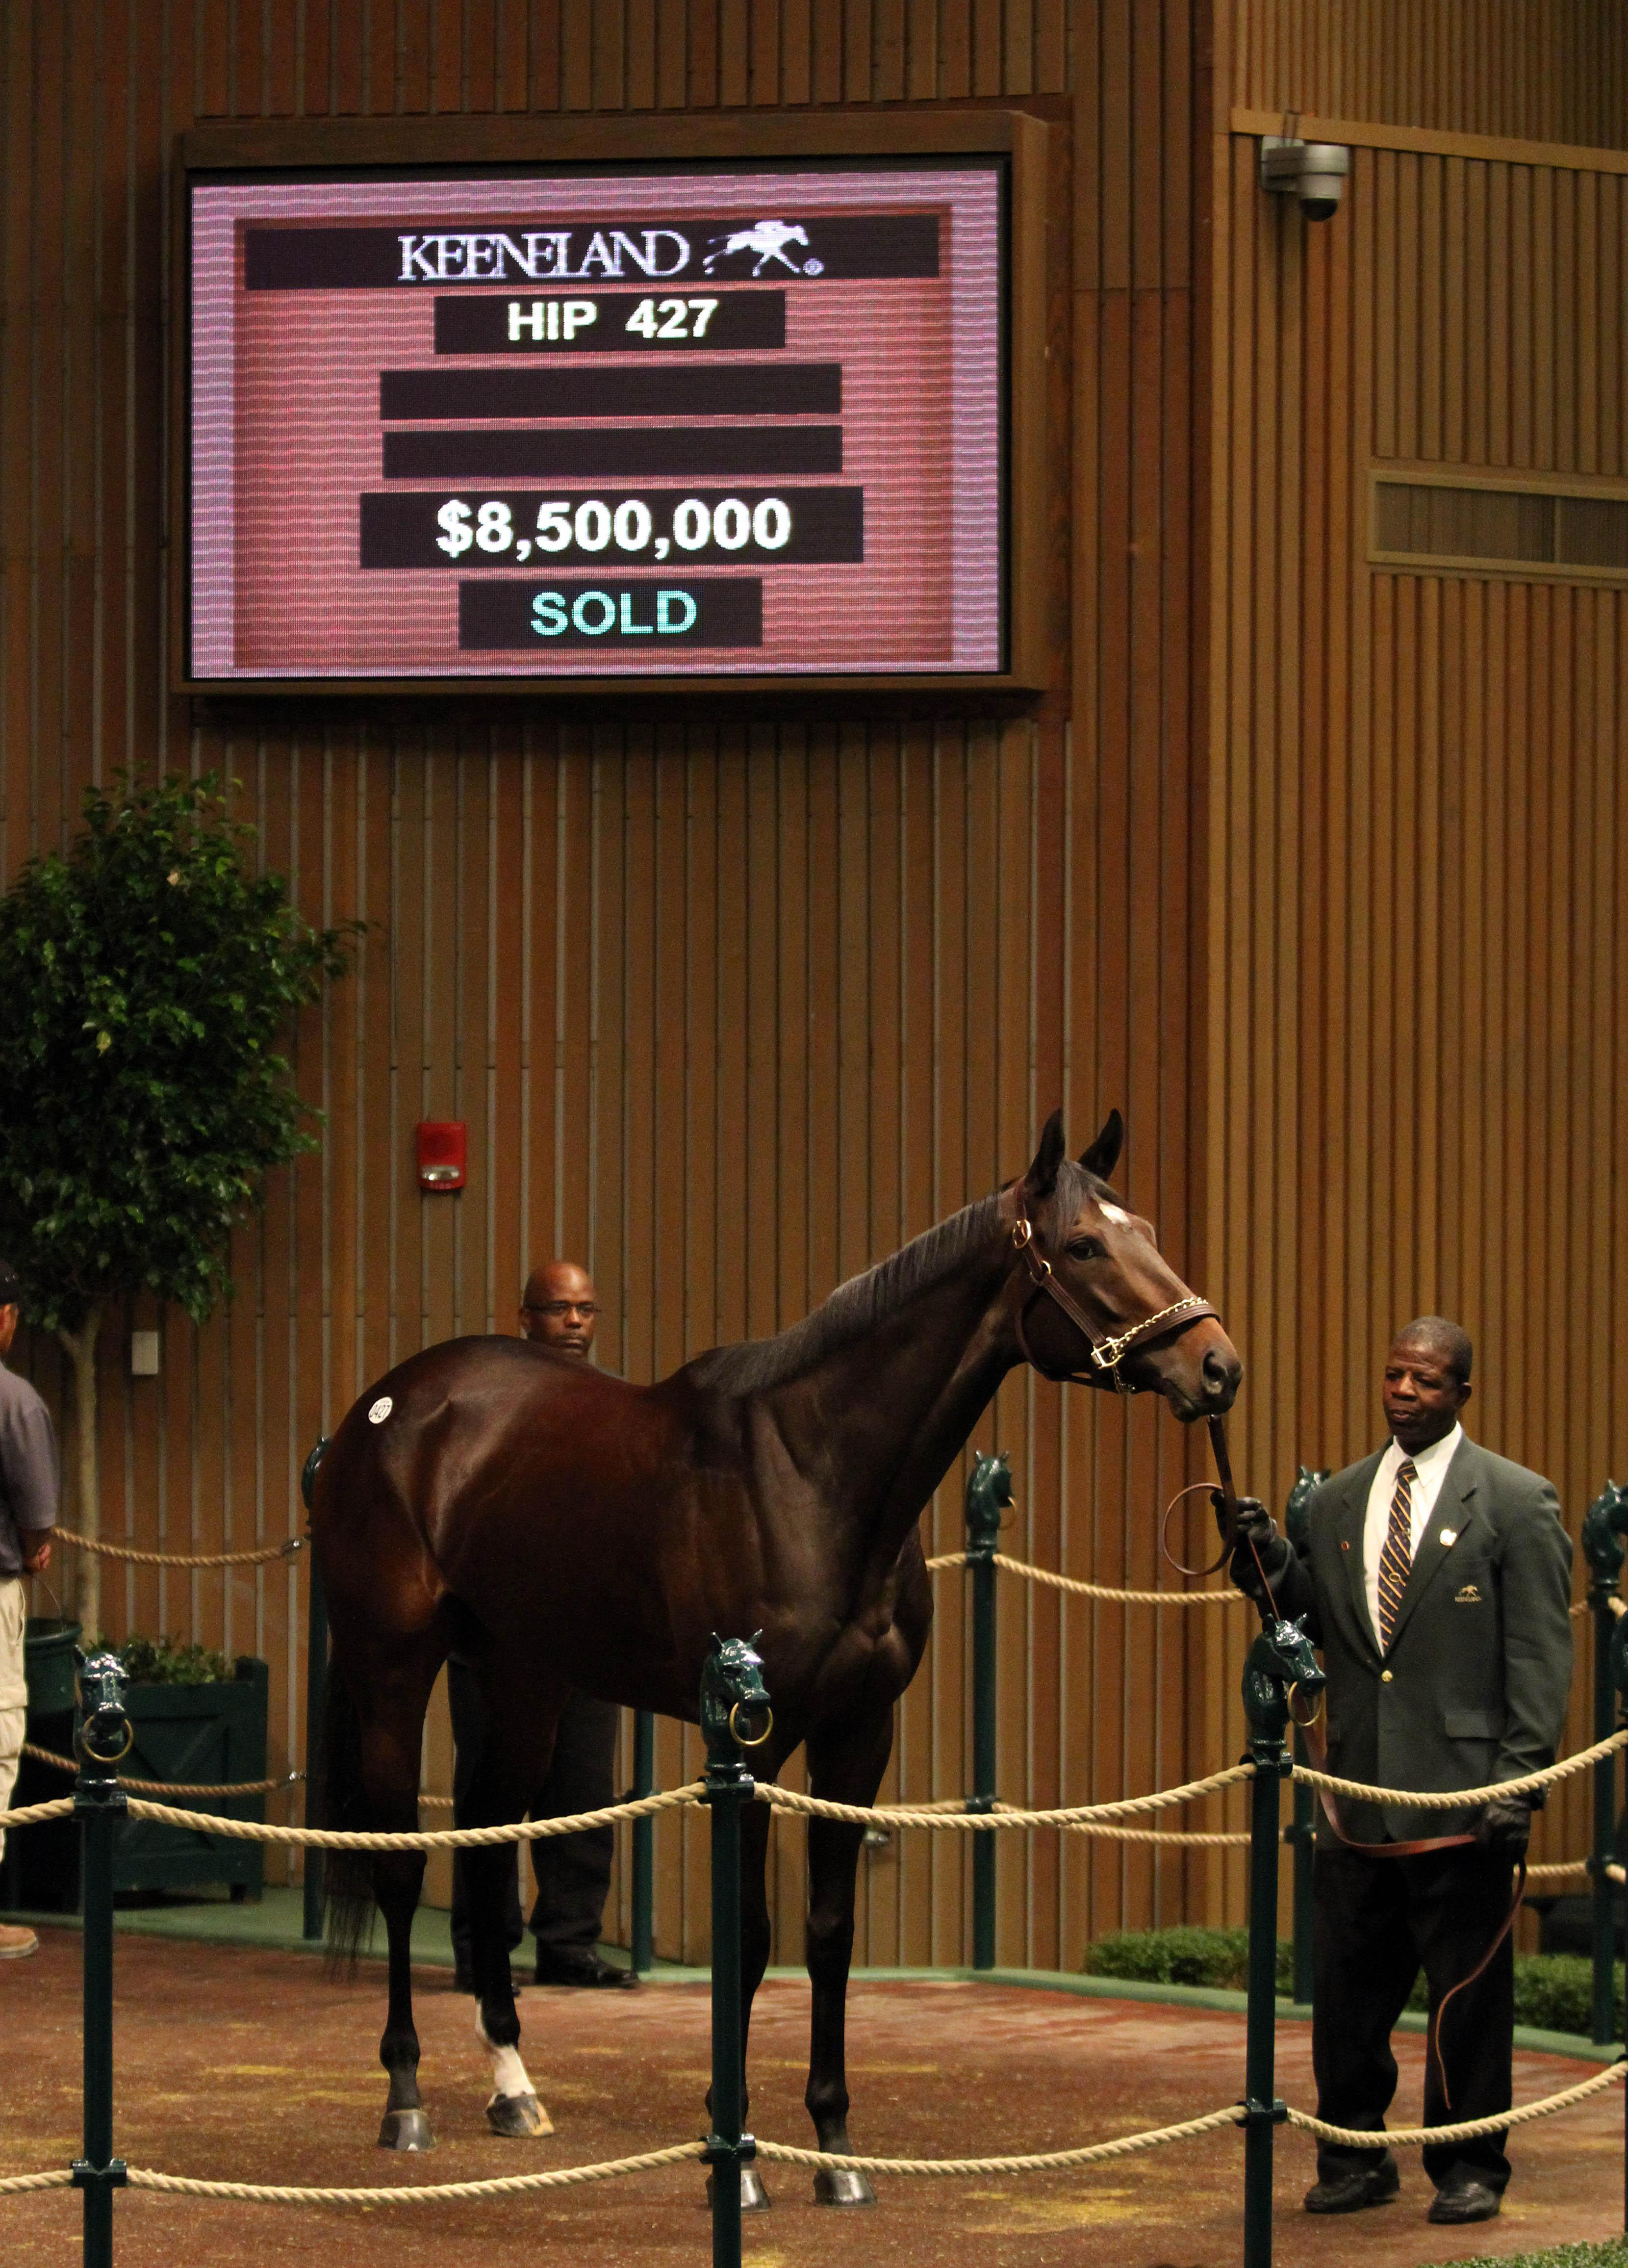 Royal Delta in the Keeneland sale ring.